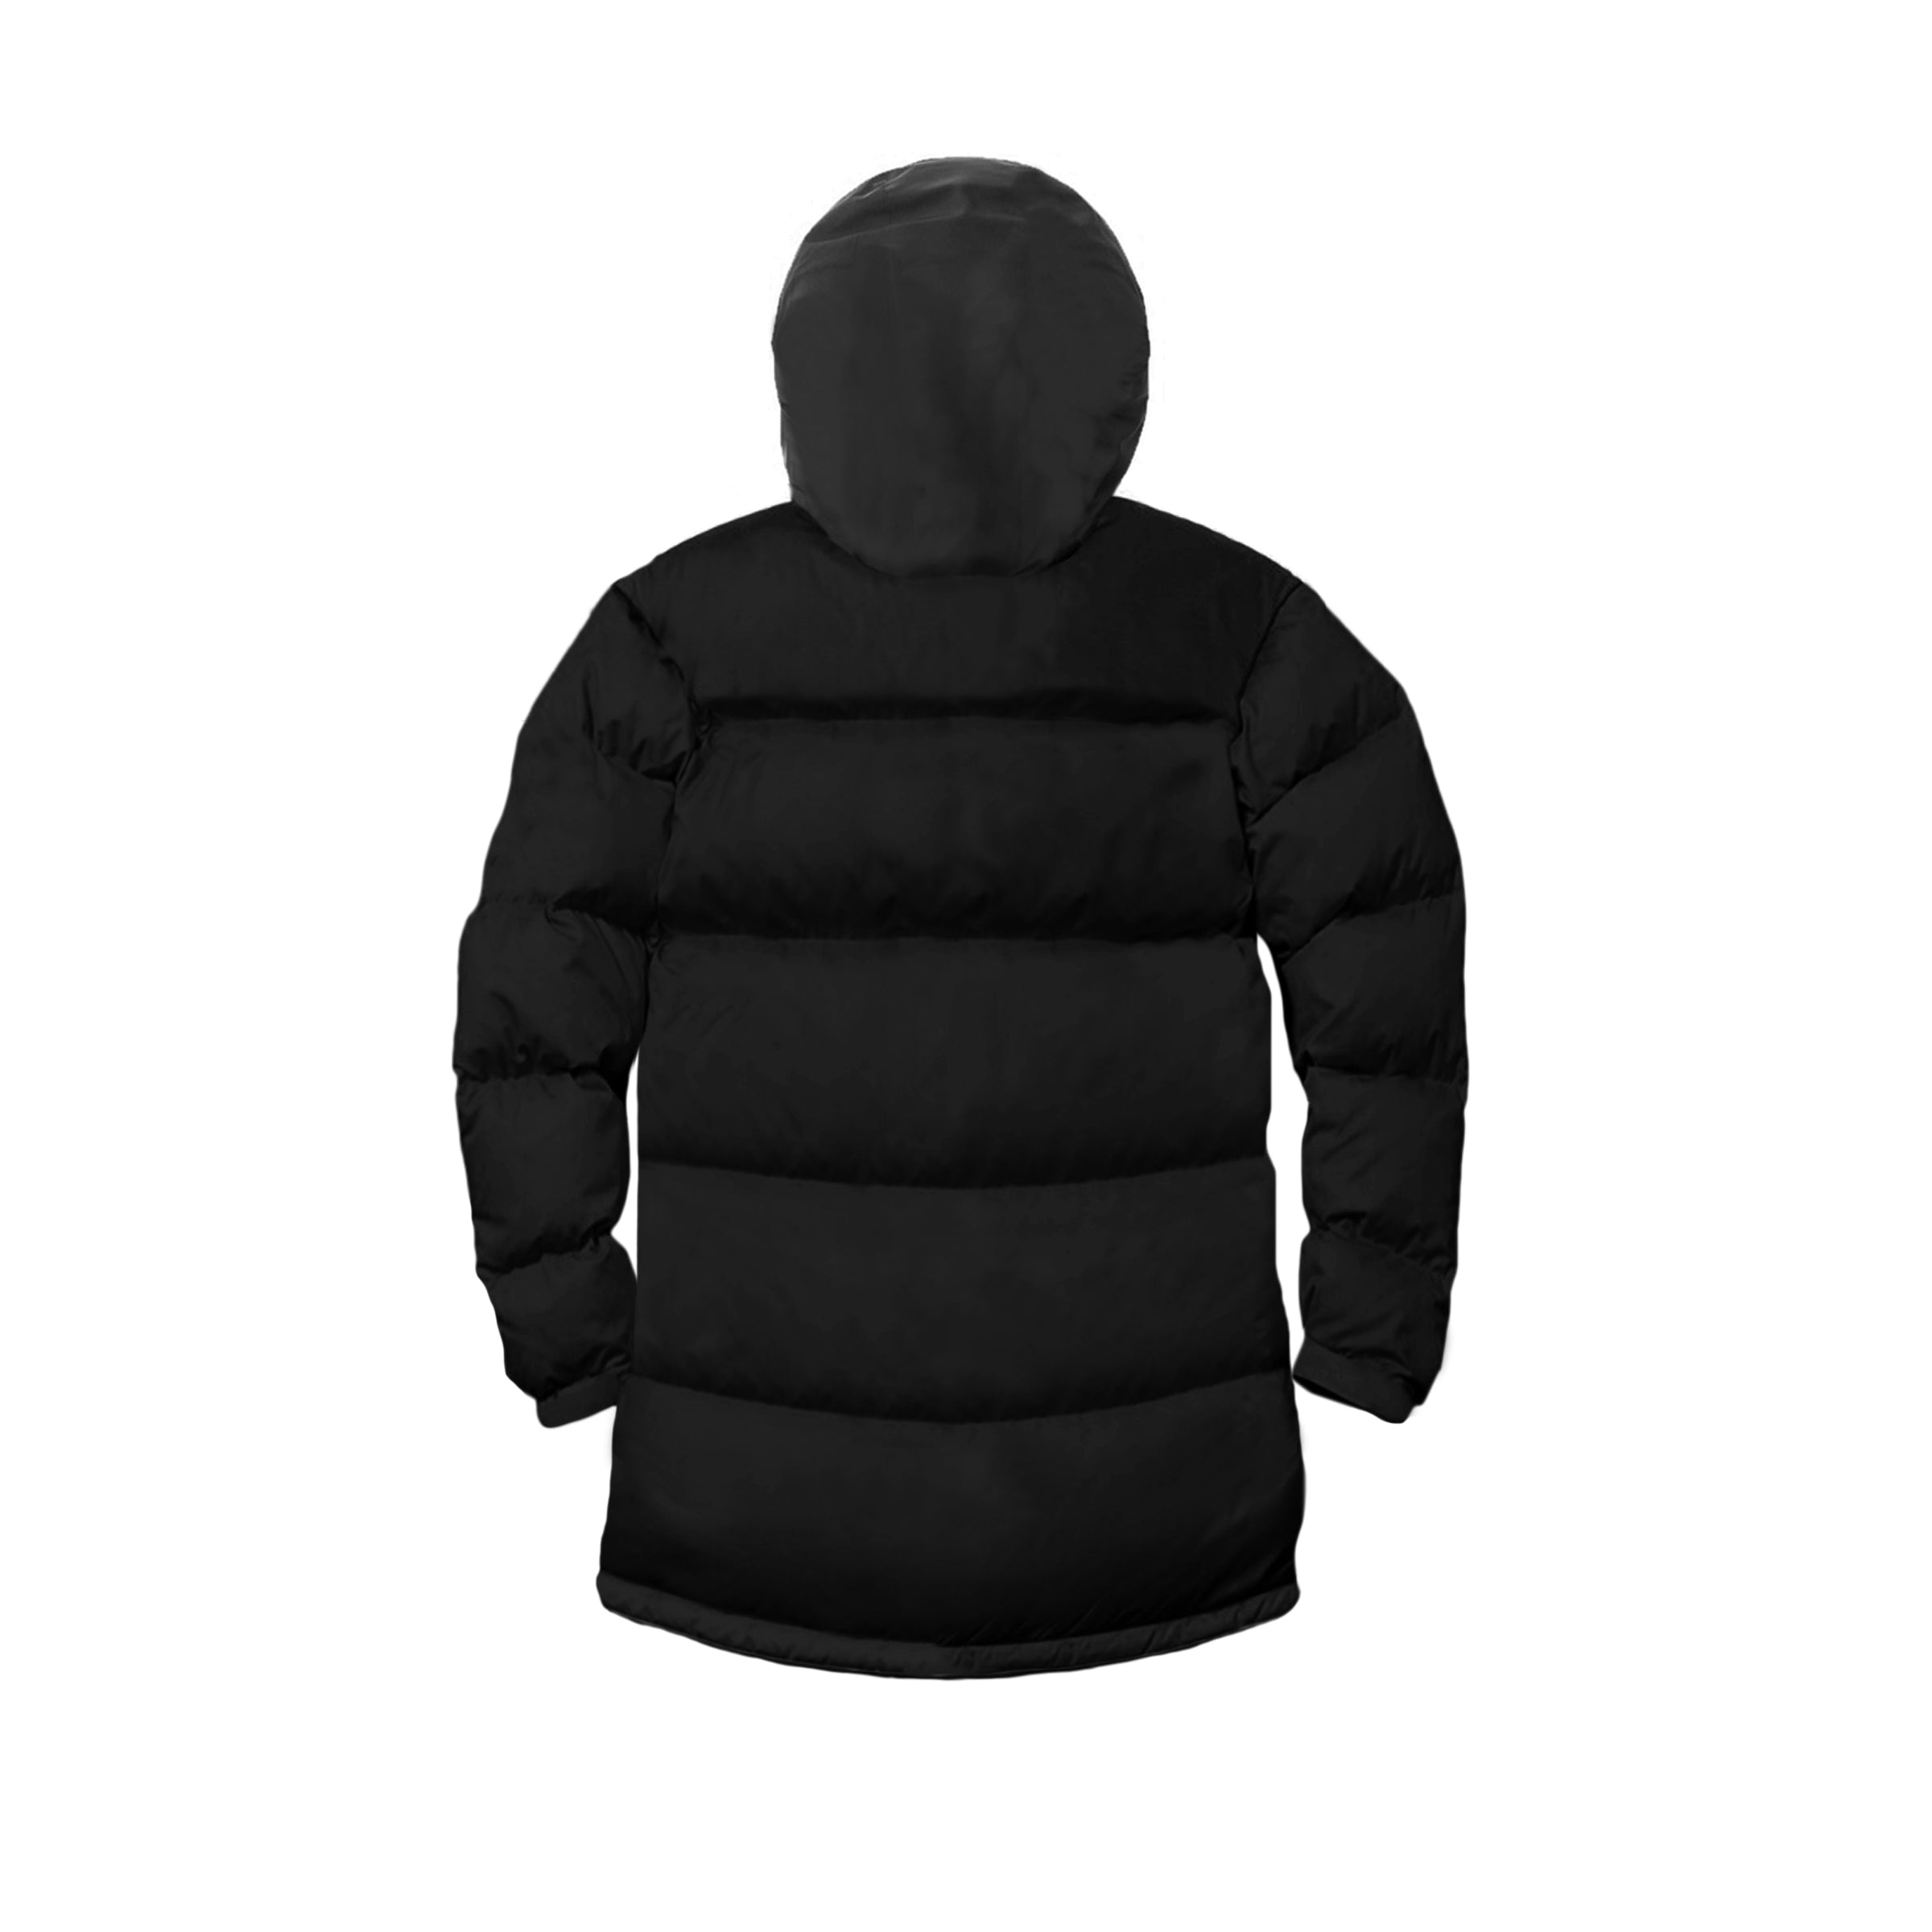 Technical Puffer Jacket - Black image 8